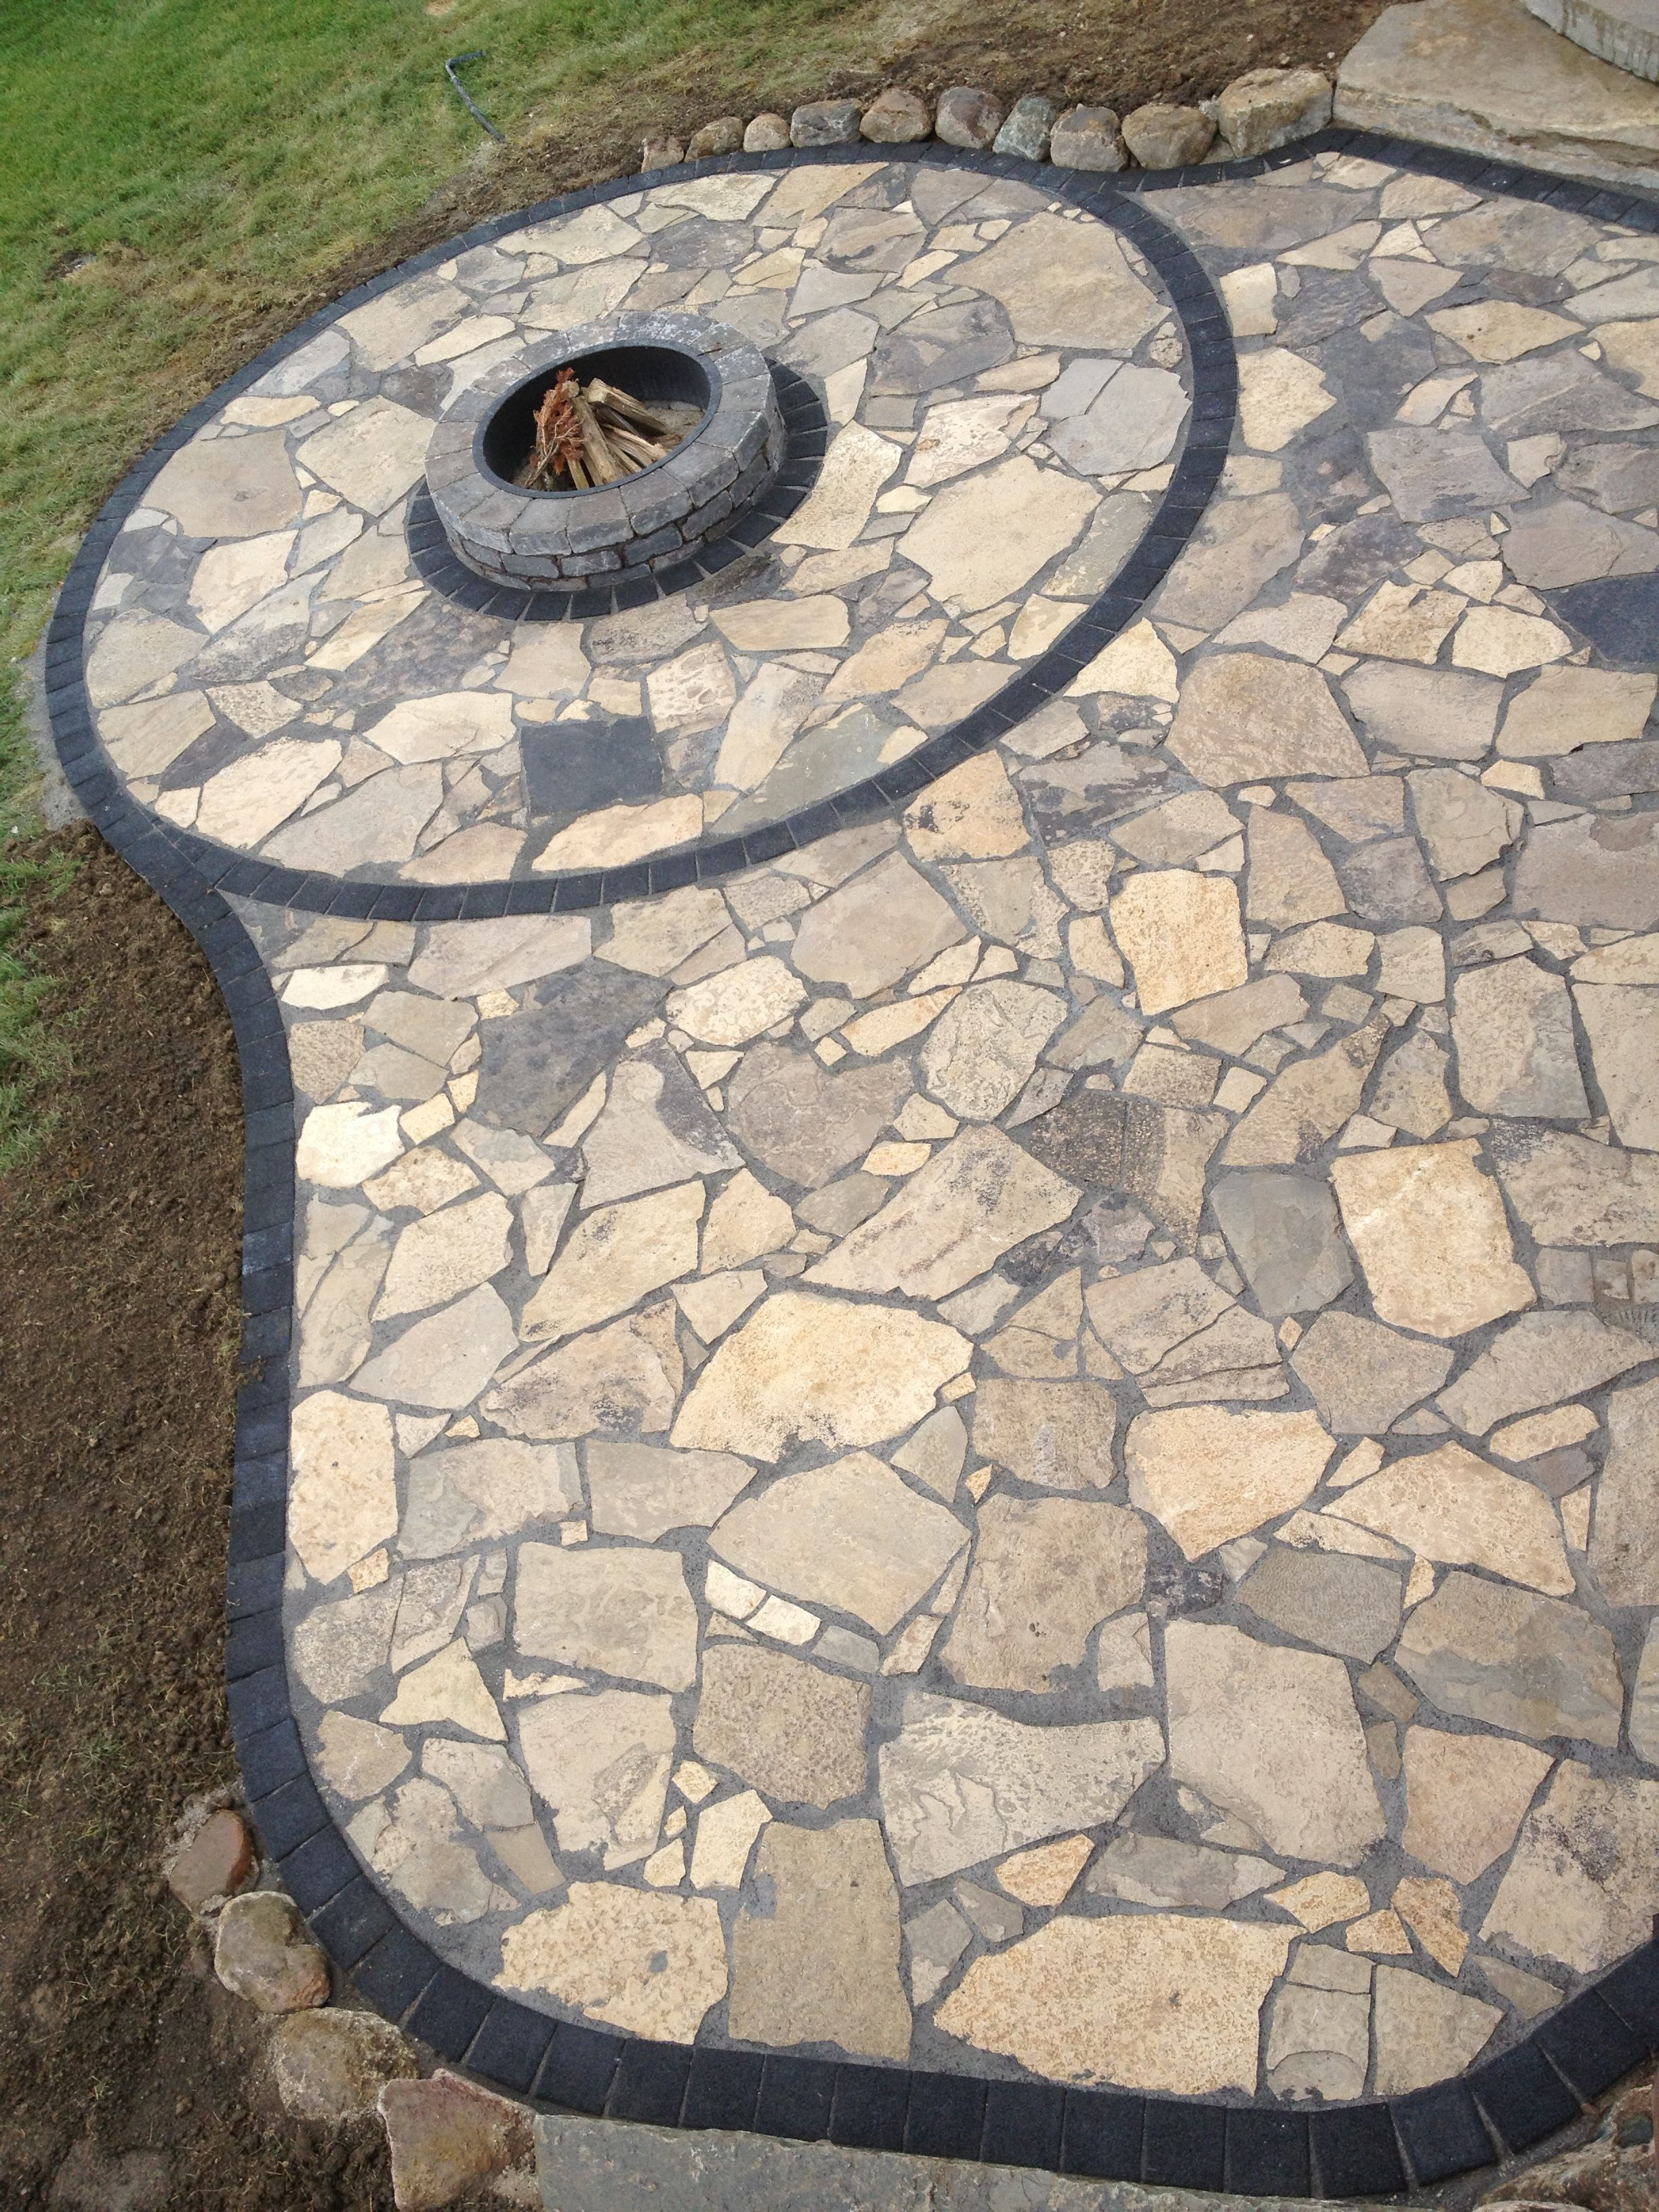 canadian flagstone patio with unilock paver accent bricks by frank spiker of all natural landscapes - Flagstone Patio Designs